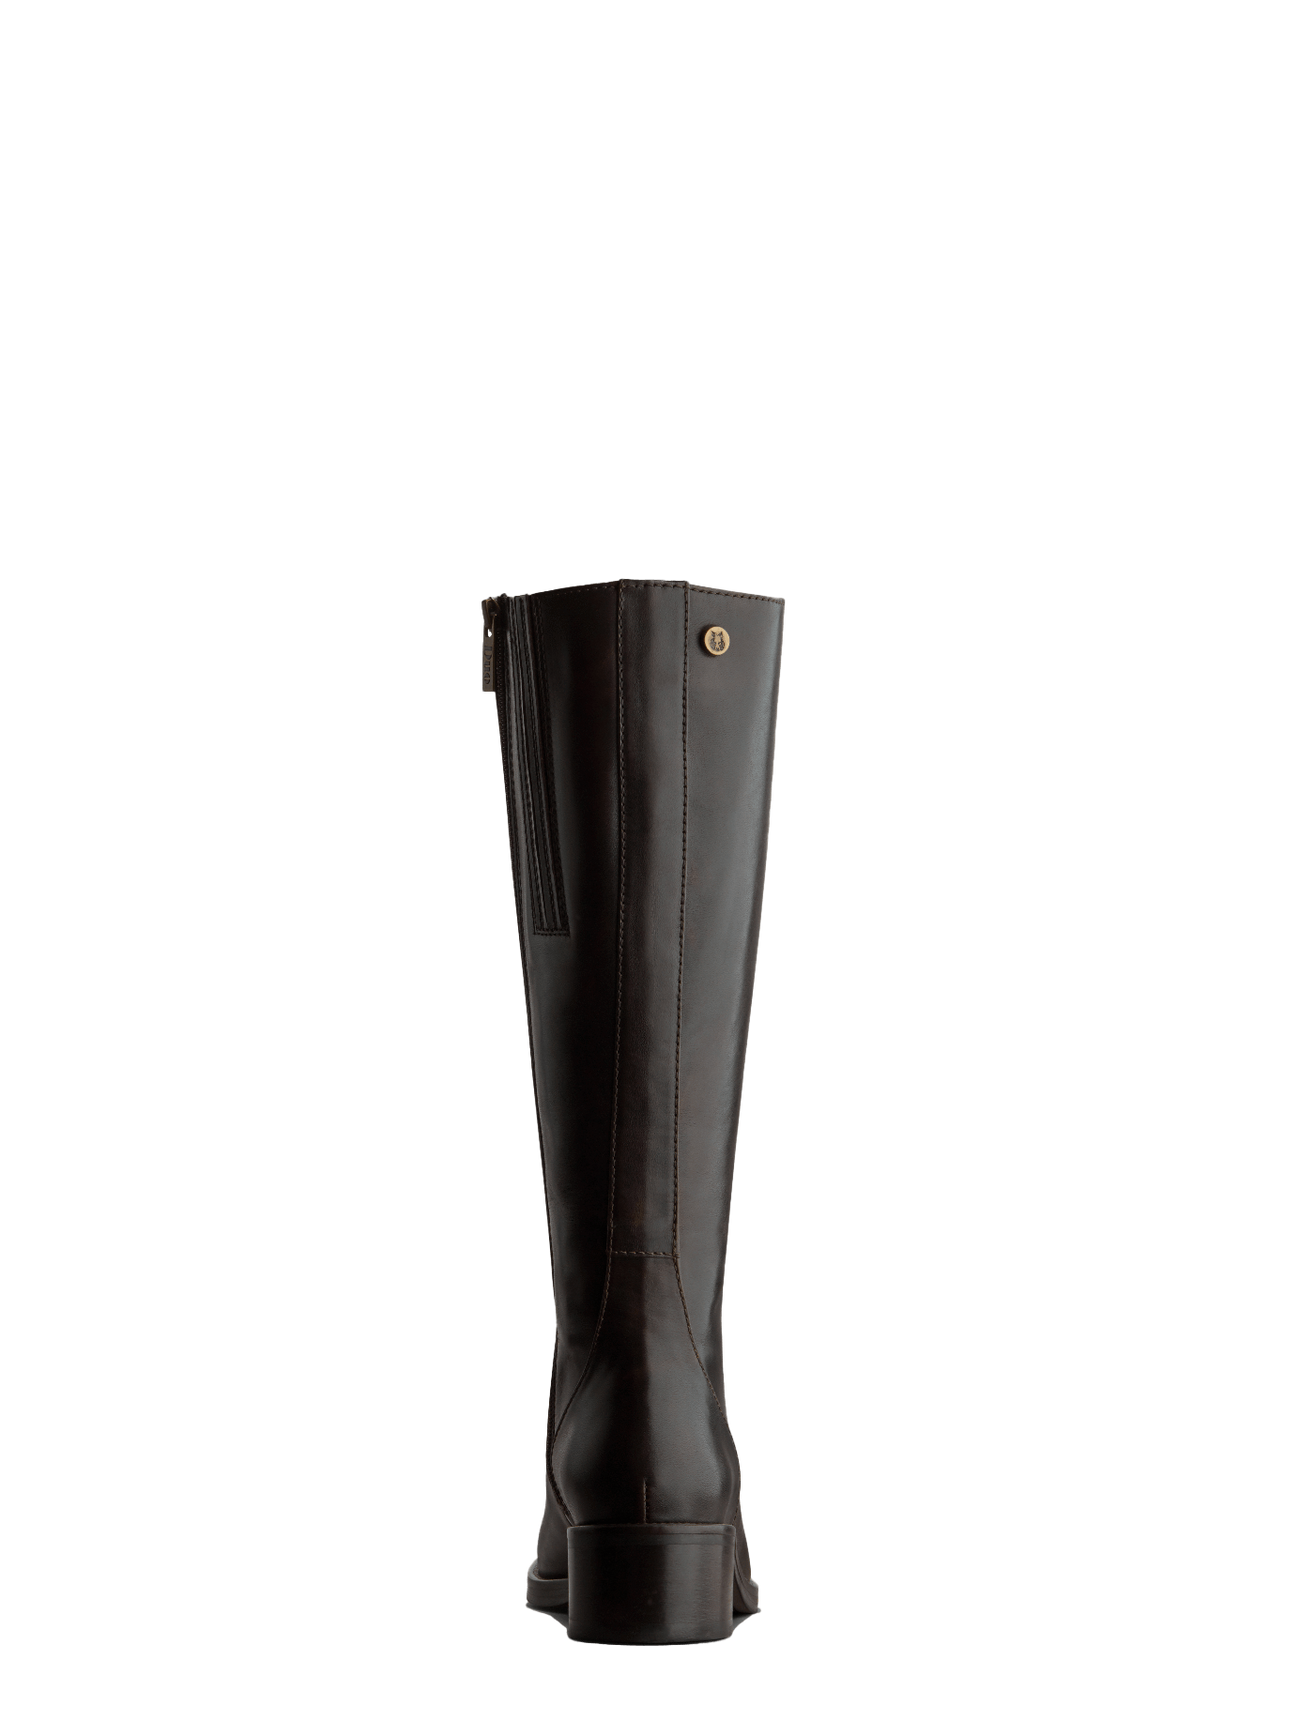 This brown boot has a smooth elegant back panel and a shorter knee high cut.